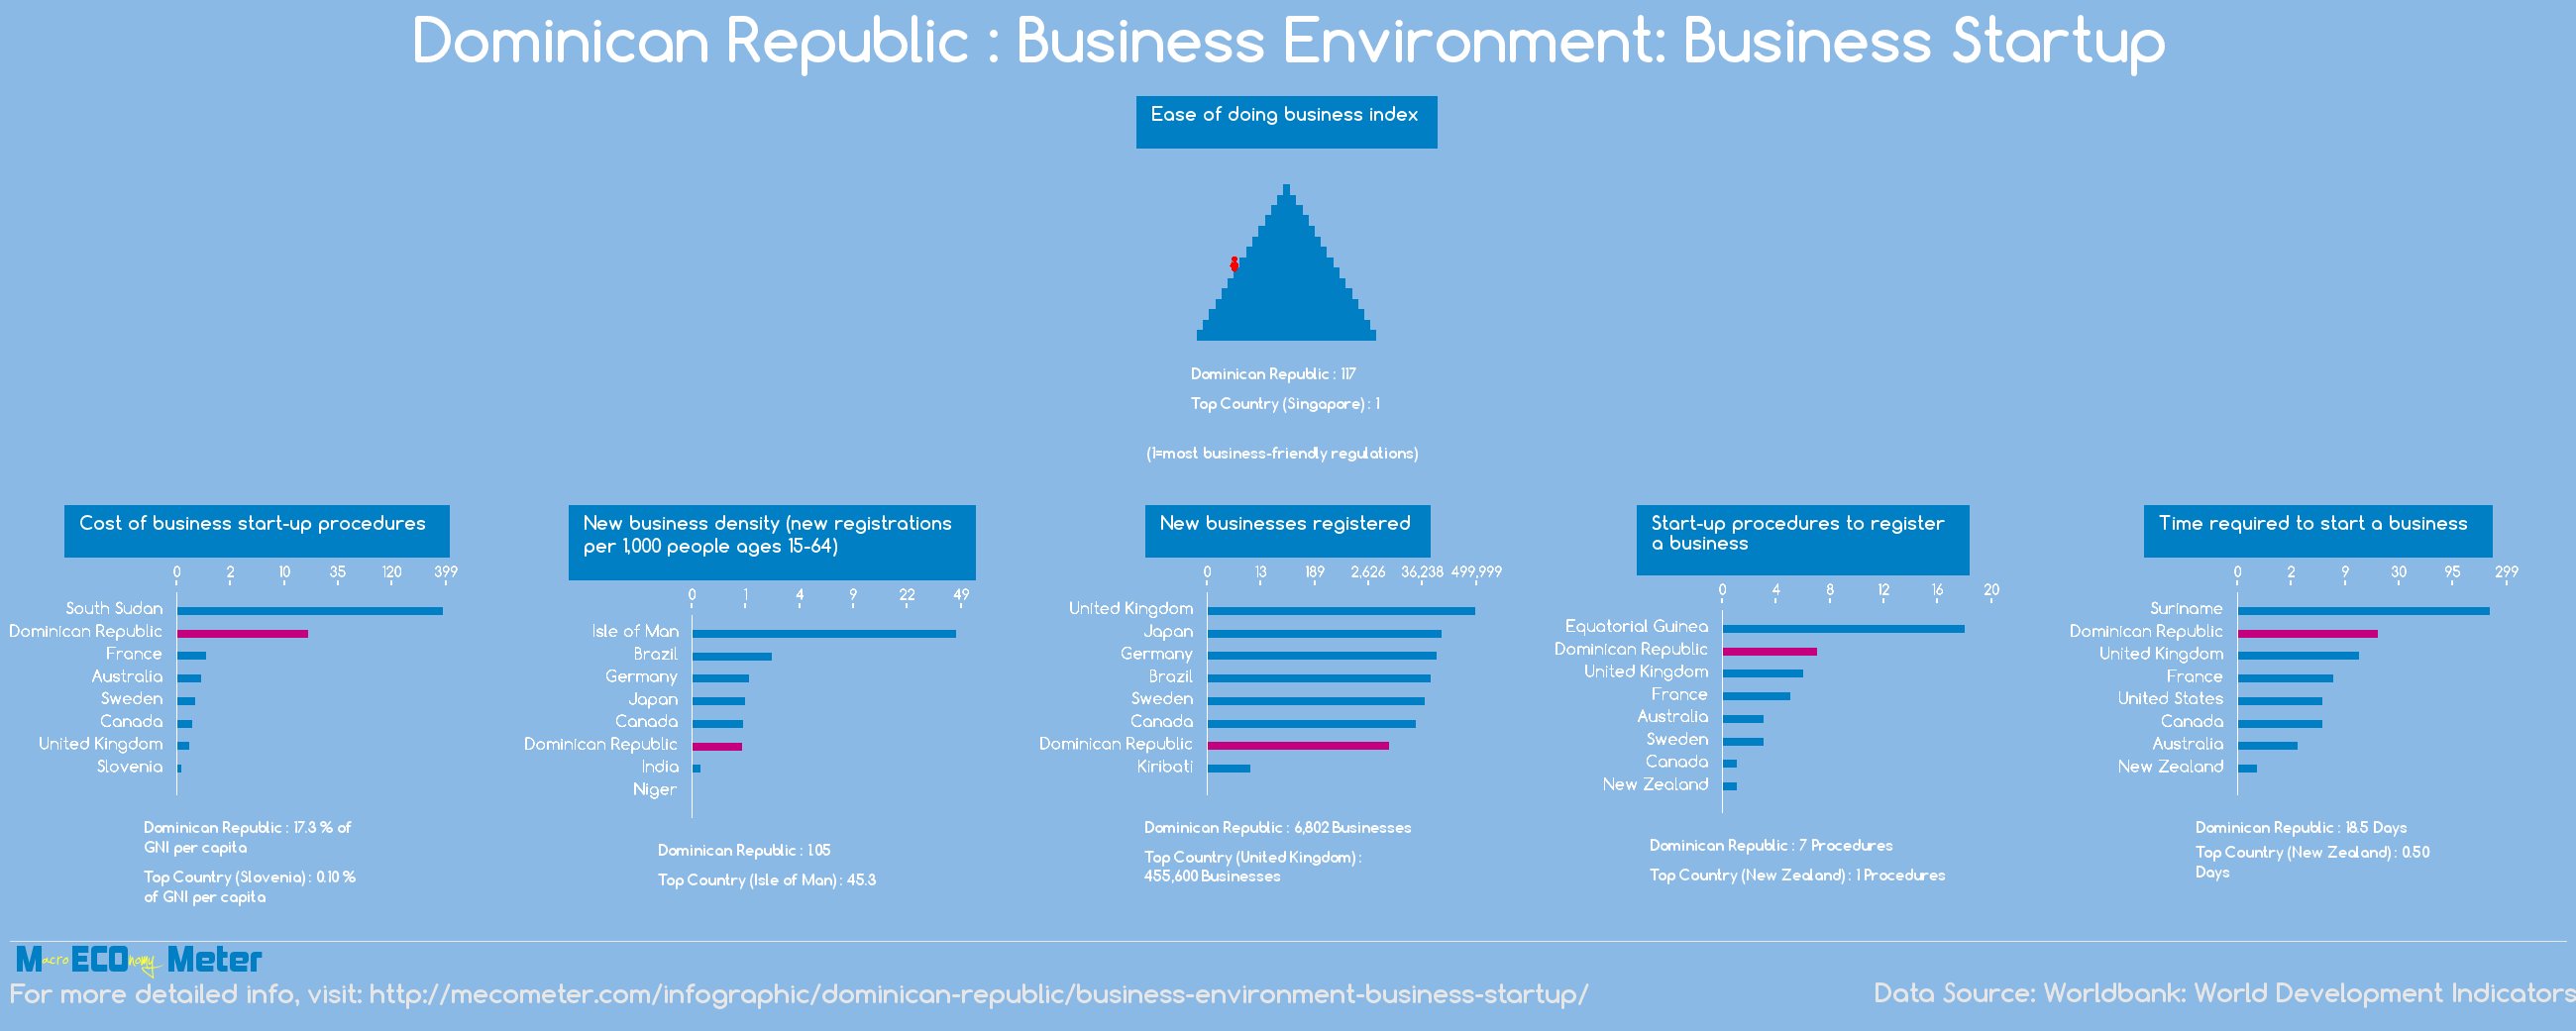 Dominican Republic : Business Environment: Business Startup